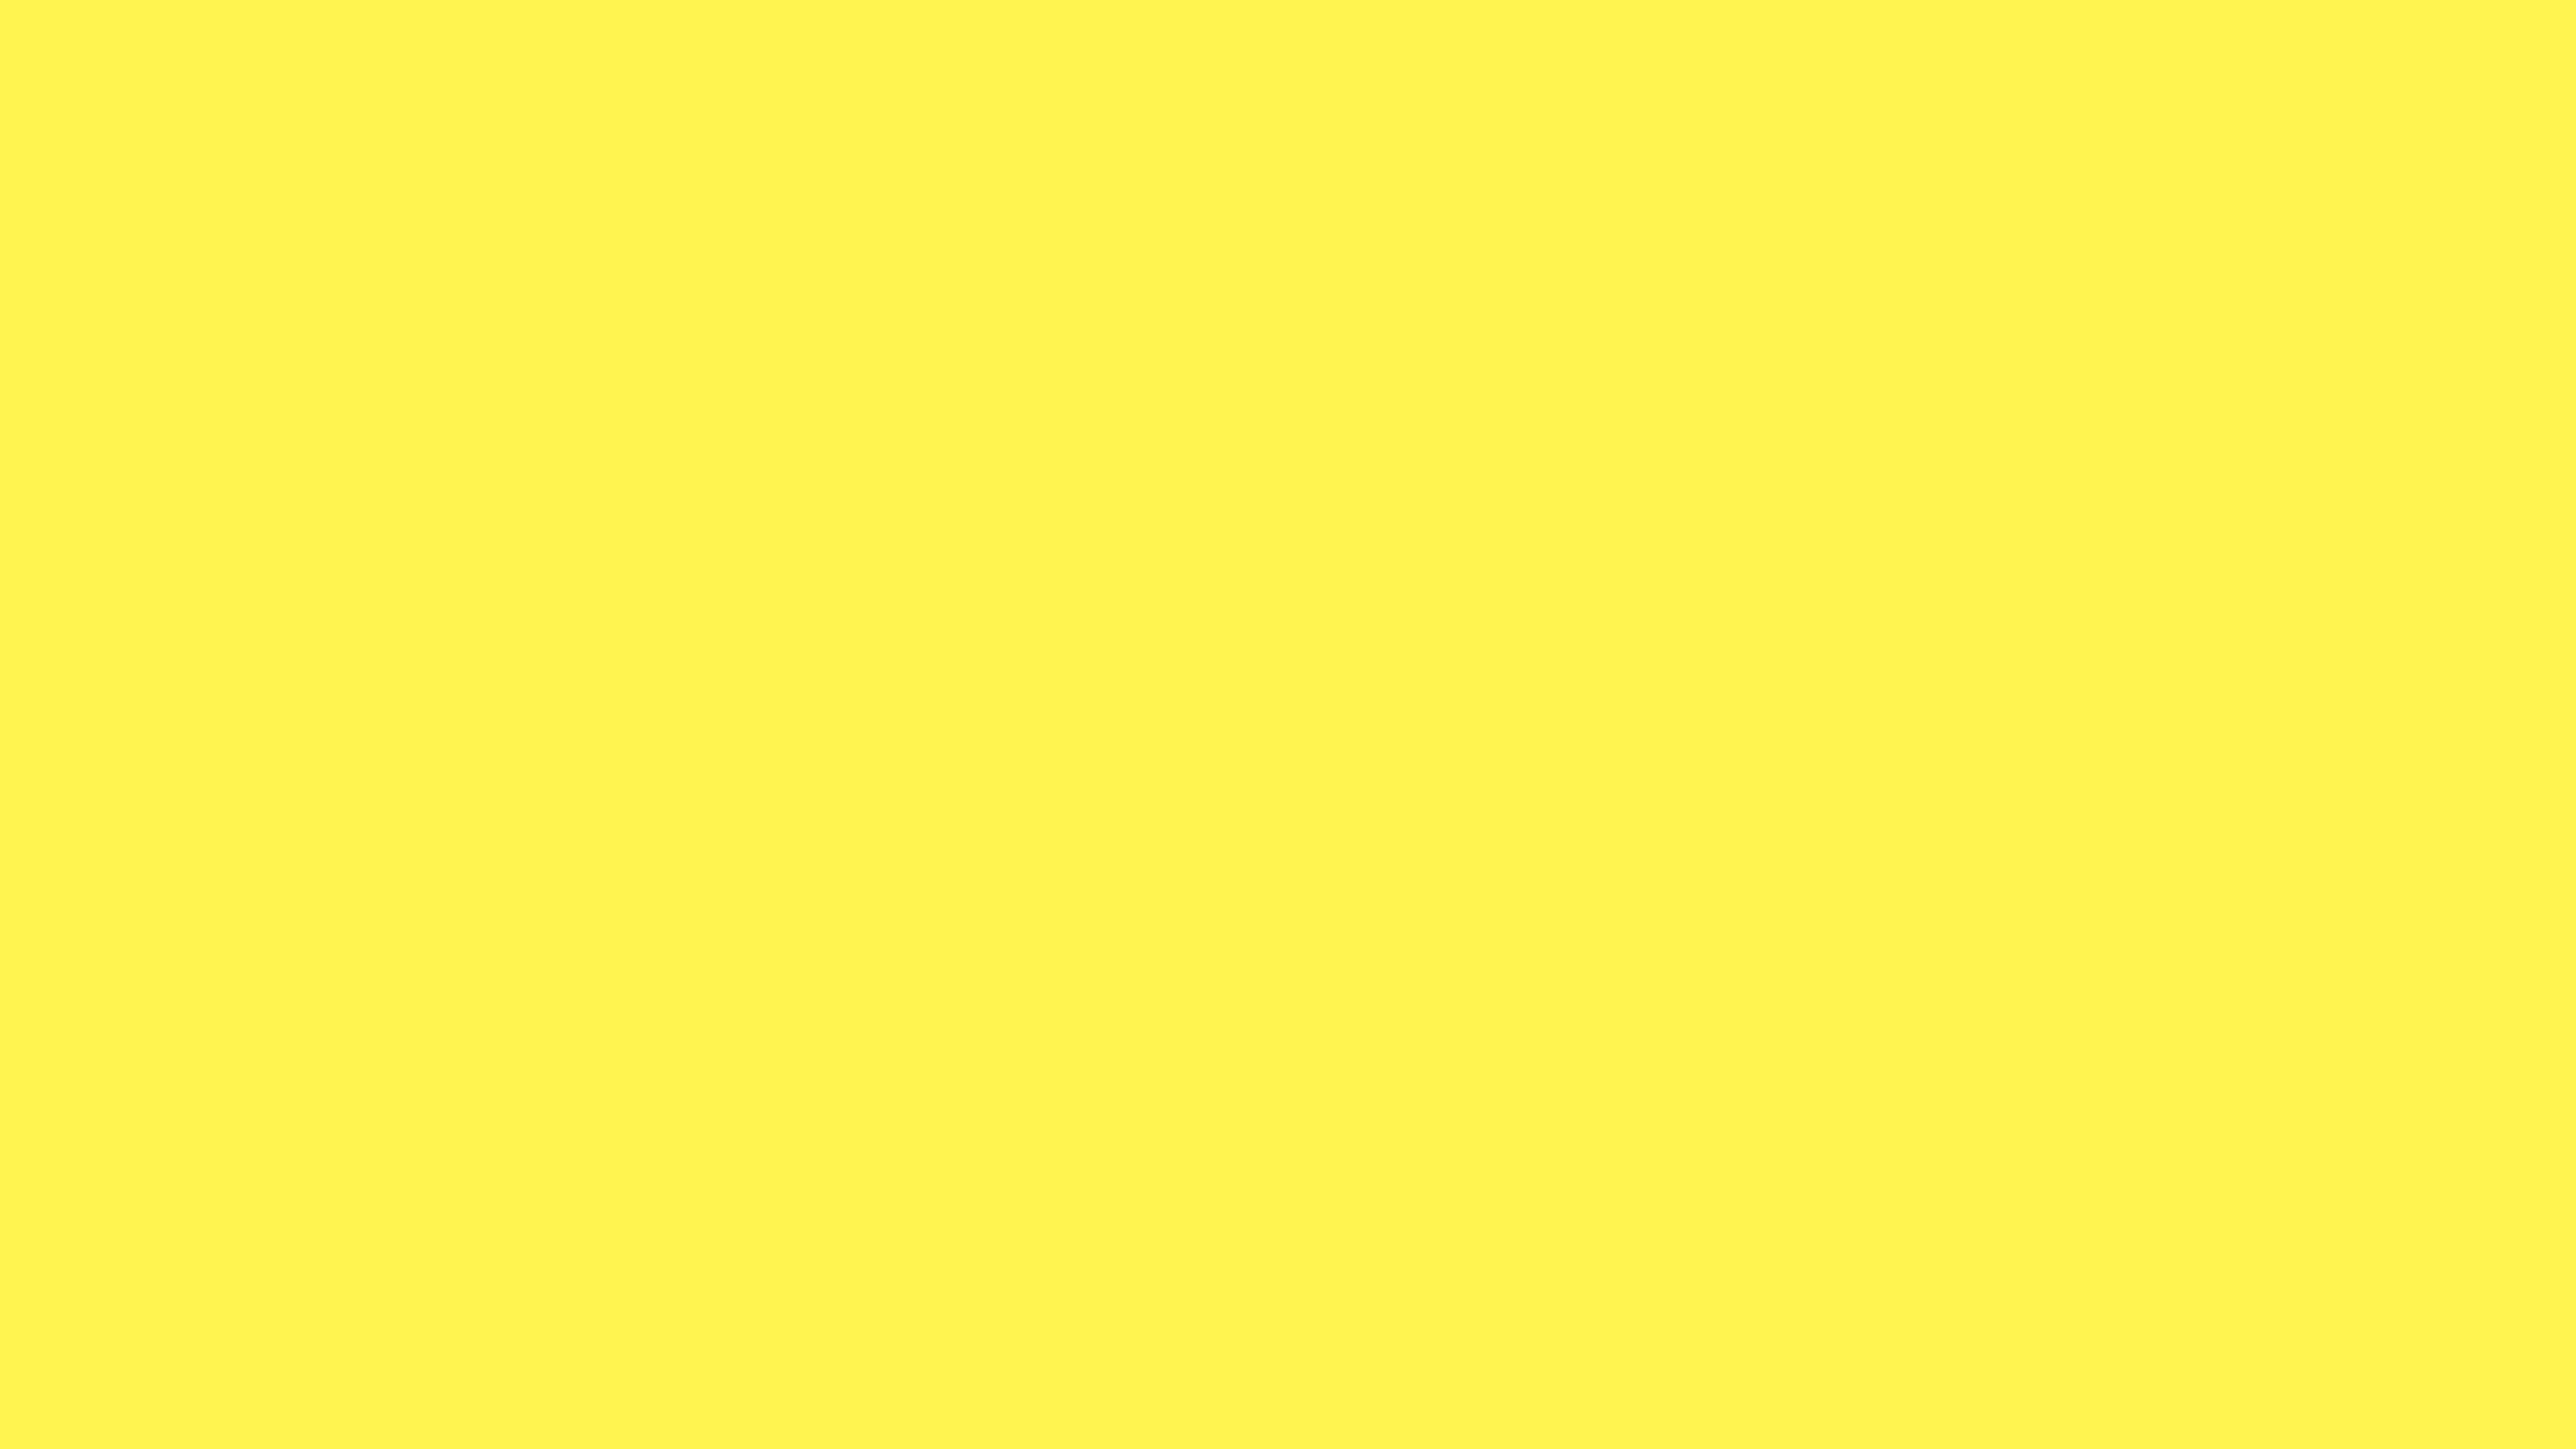 7680x4320 Lemon Yellow Solid Color Background